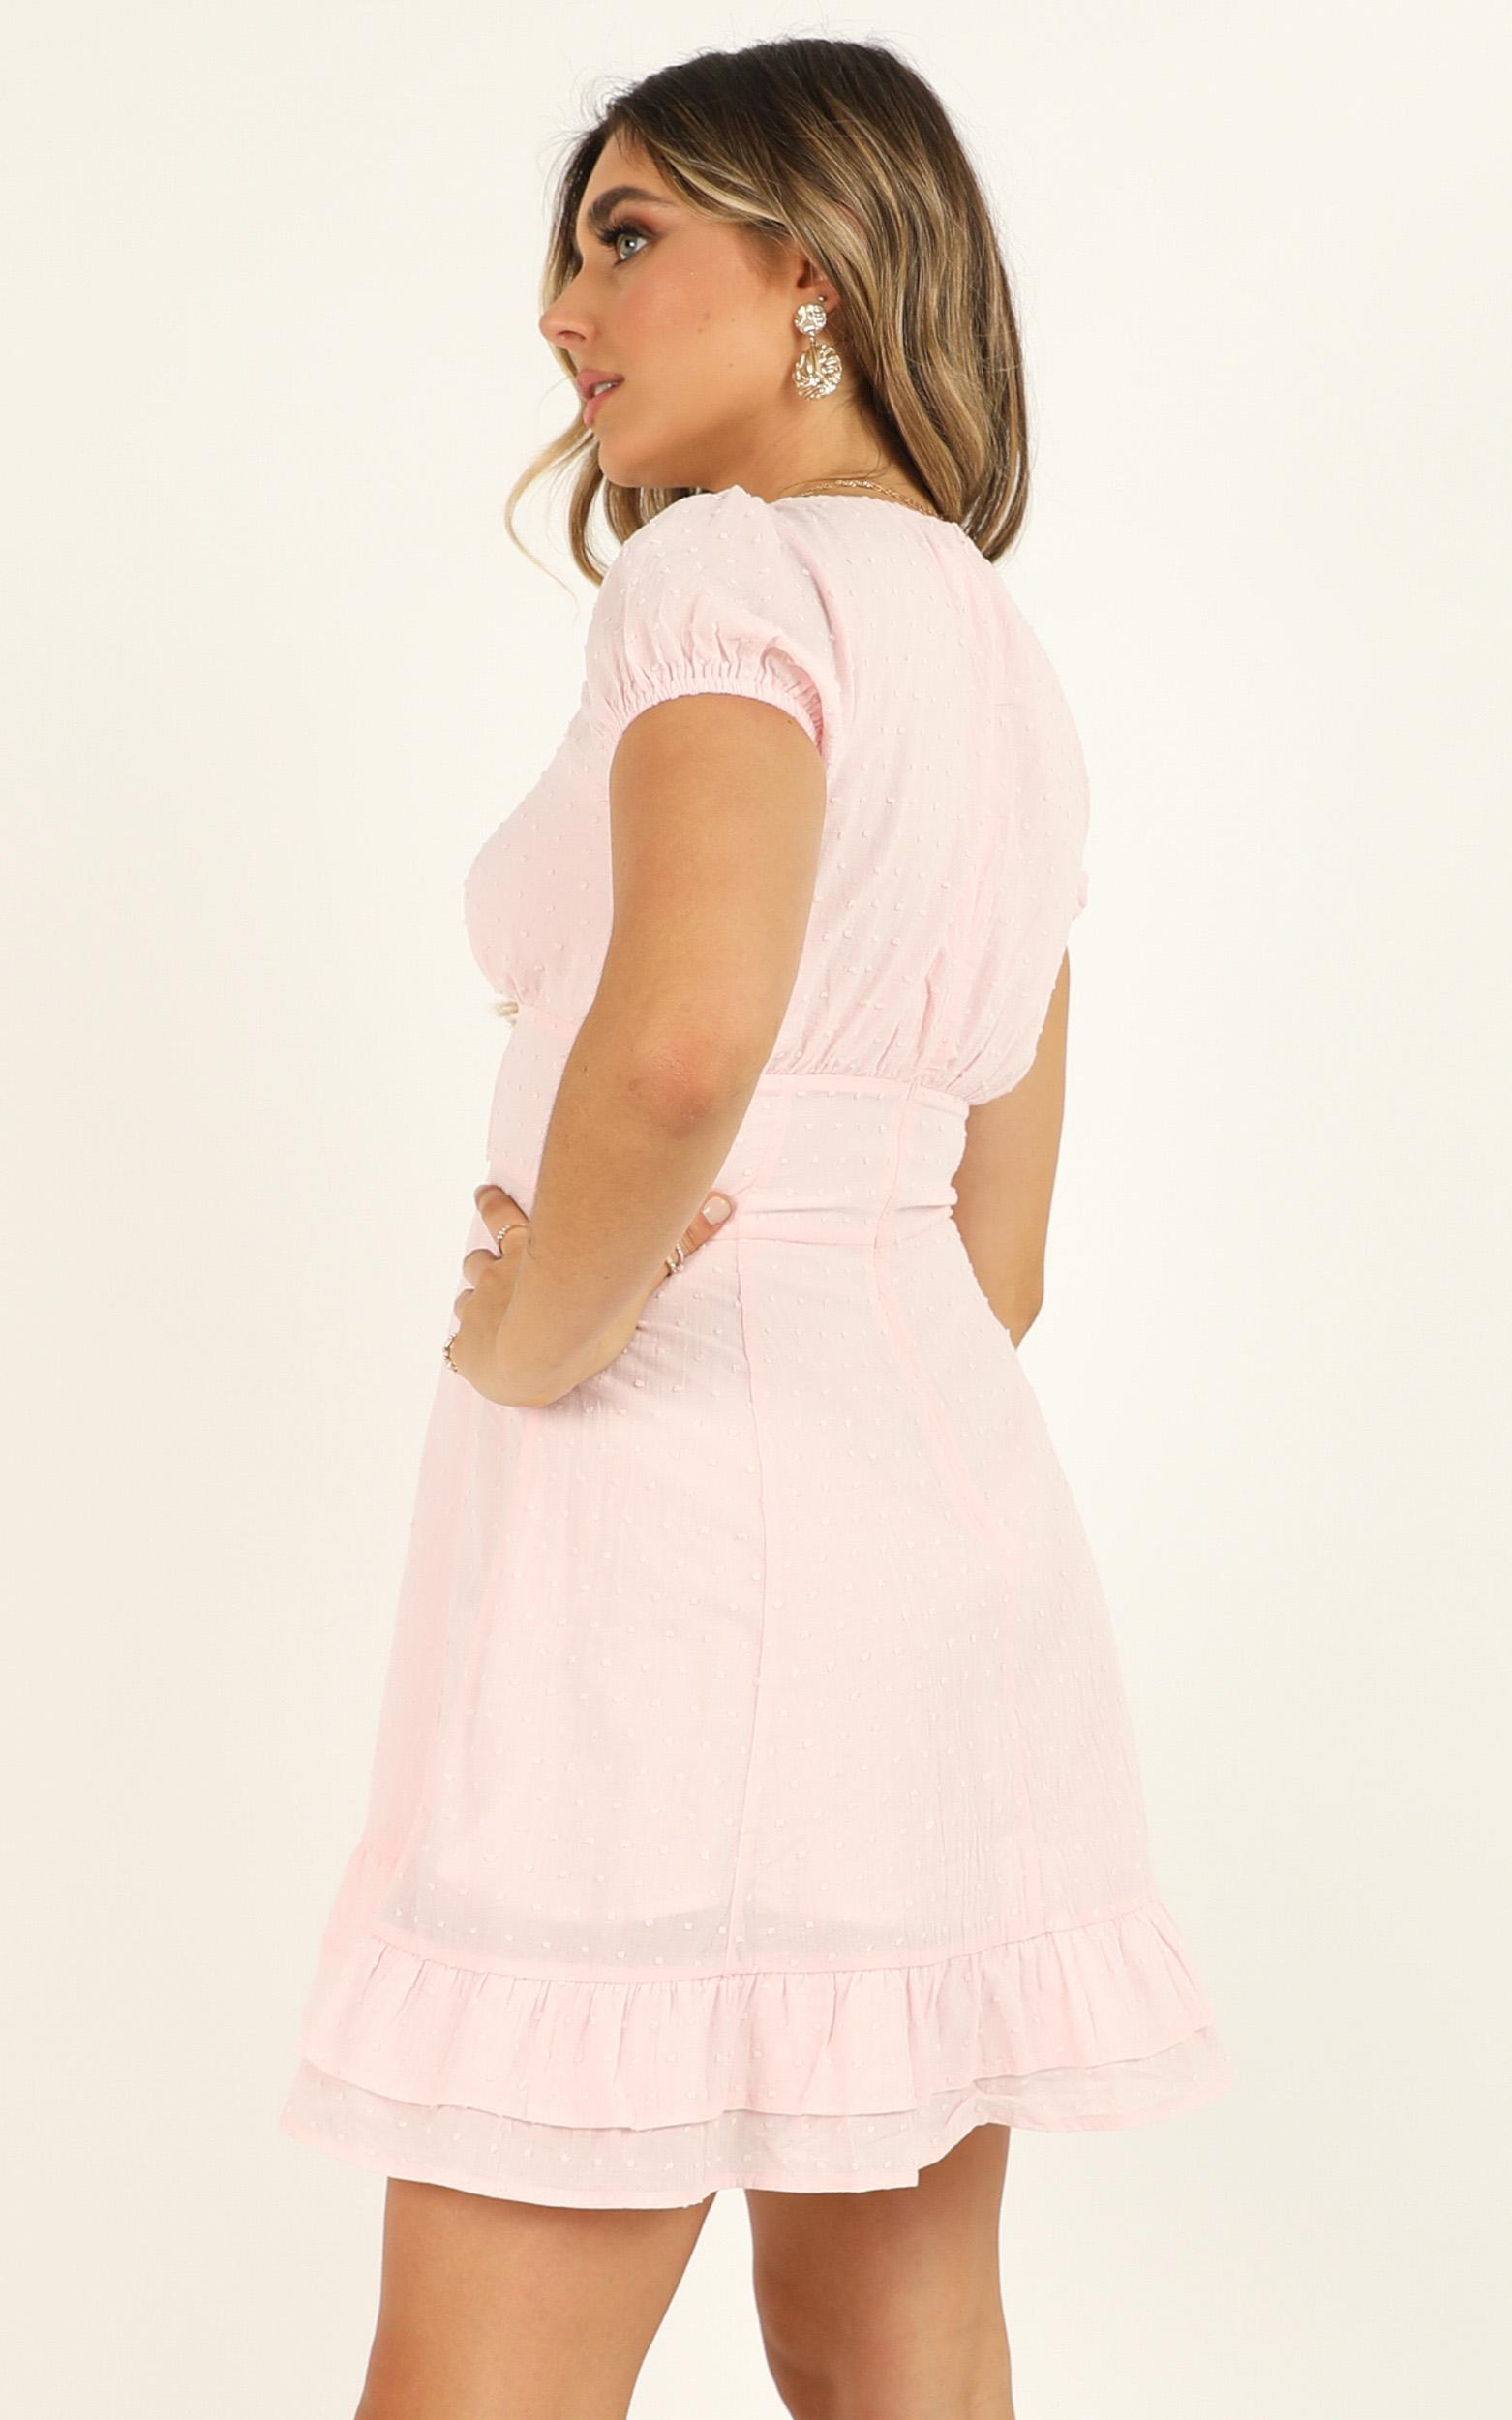 Not Now But Soon Dress in blush - 20 (XXXXL), Blush, hi-res image number null